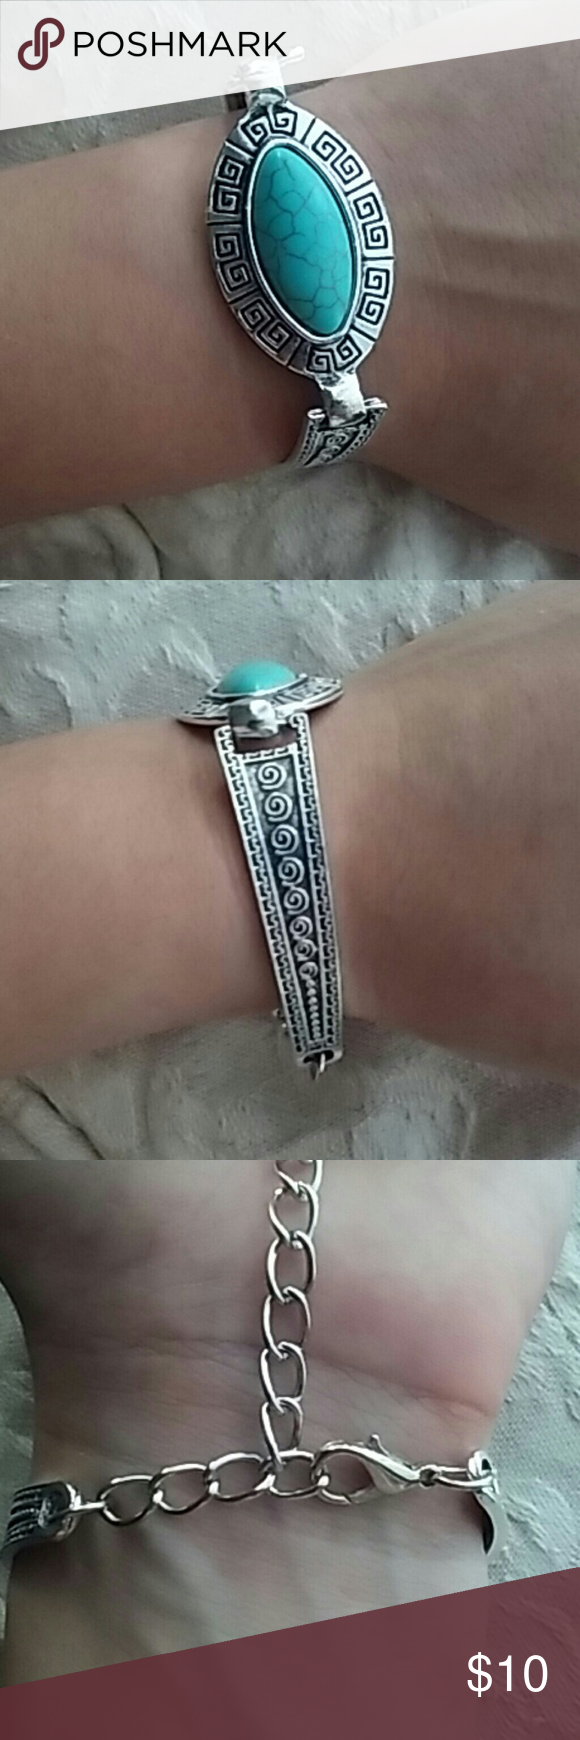 Turquoise tribal style bracelet! This silver bracelet is comfortable, lightweight and the beautiful turquoise stone is perfect for summer! Jewelry Bracelets